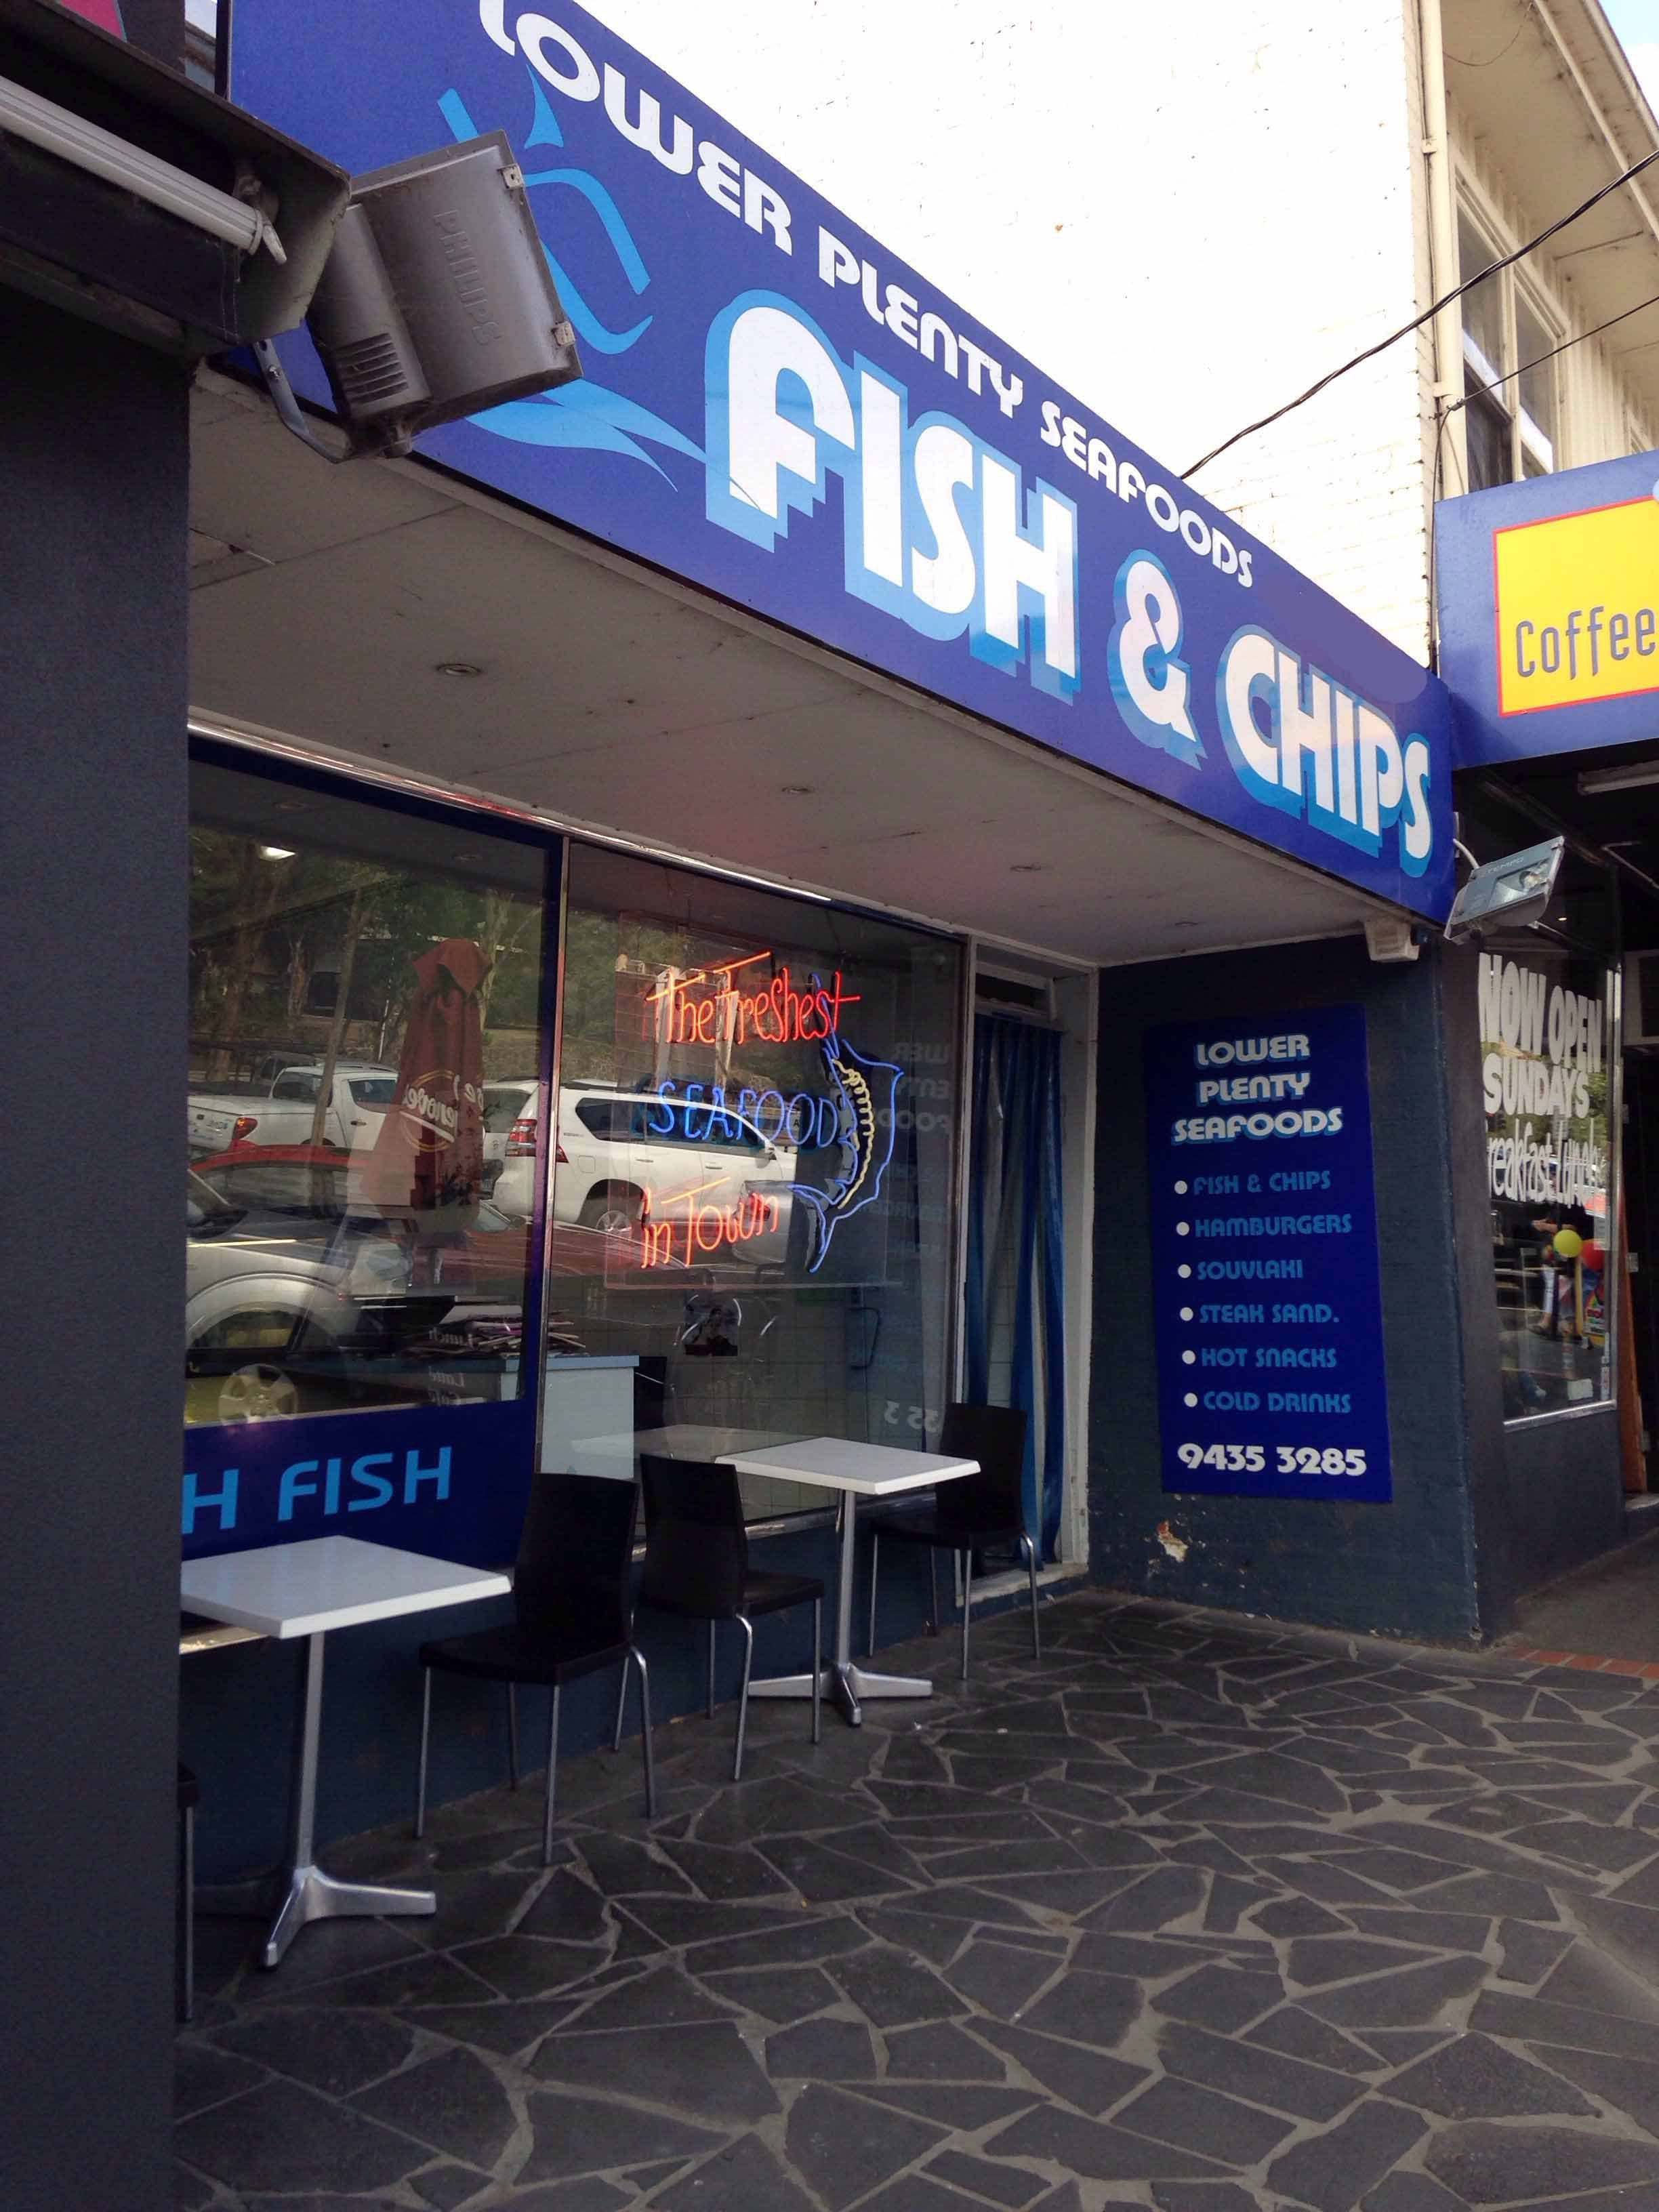 Lower Plenty Seafood - Sydney Tourism